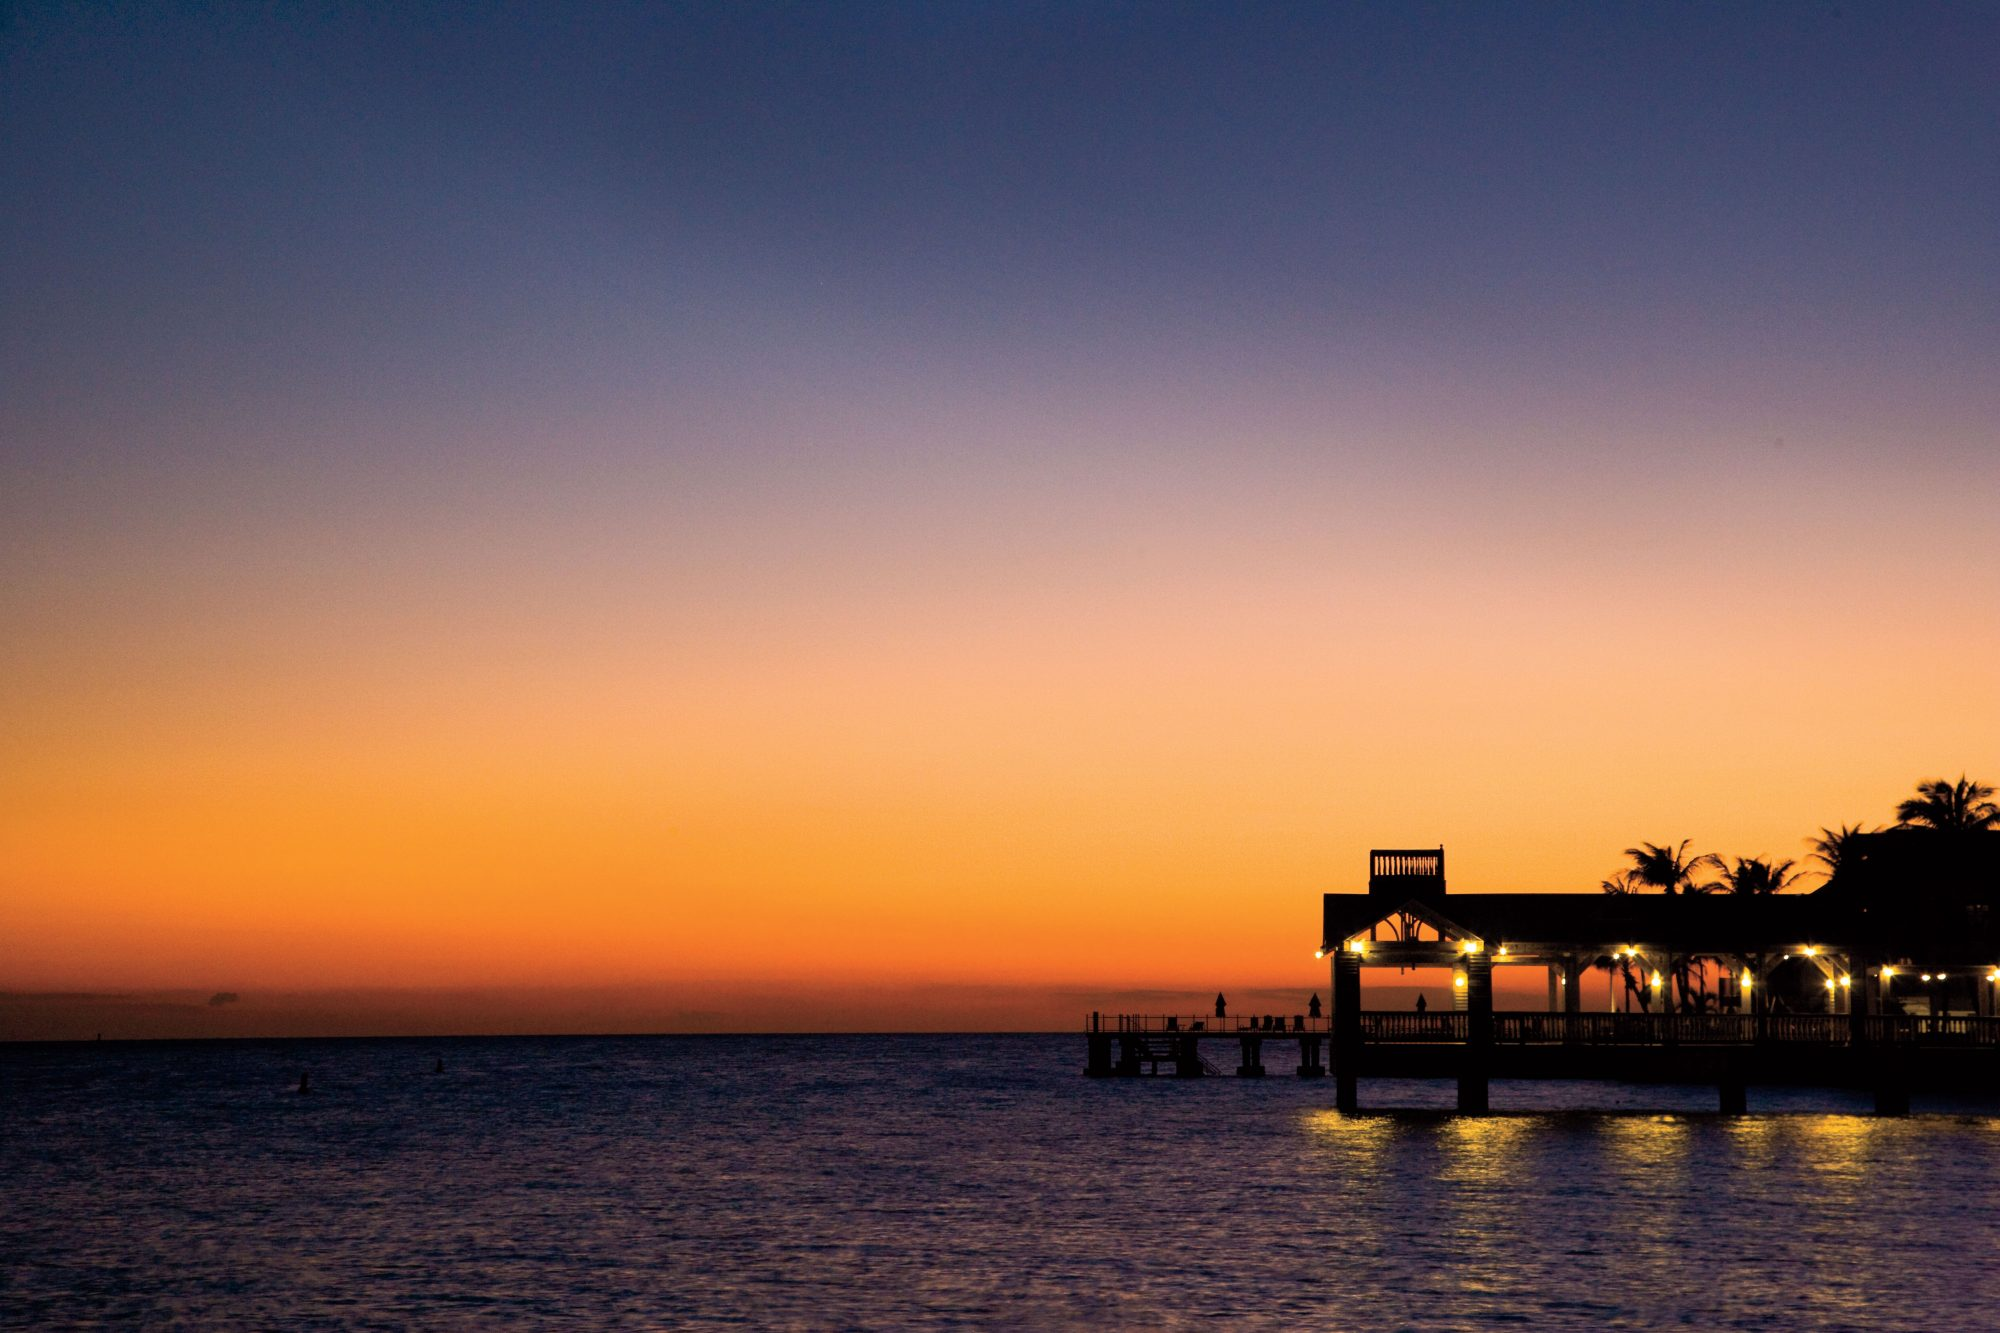 Best Southern Travel Destinations: Key West, FL